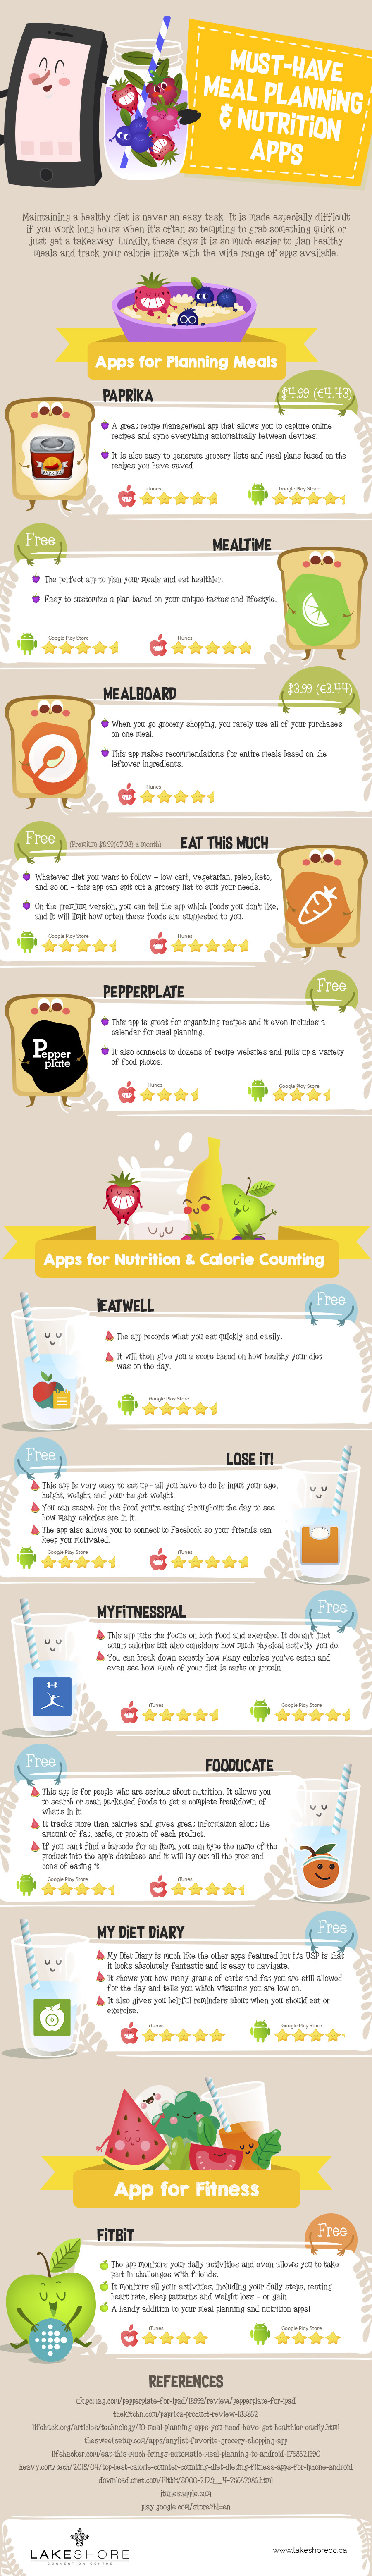 Best Meal Planning, Nutrition and Diet Apps for Android and iOS - Infographic